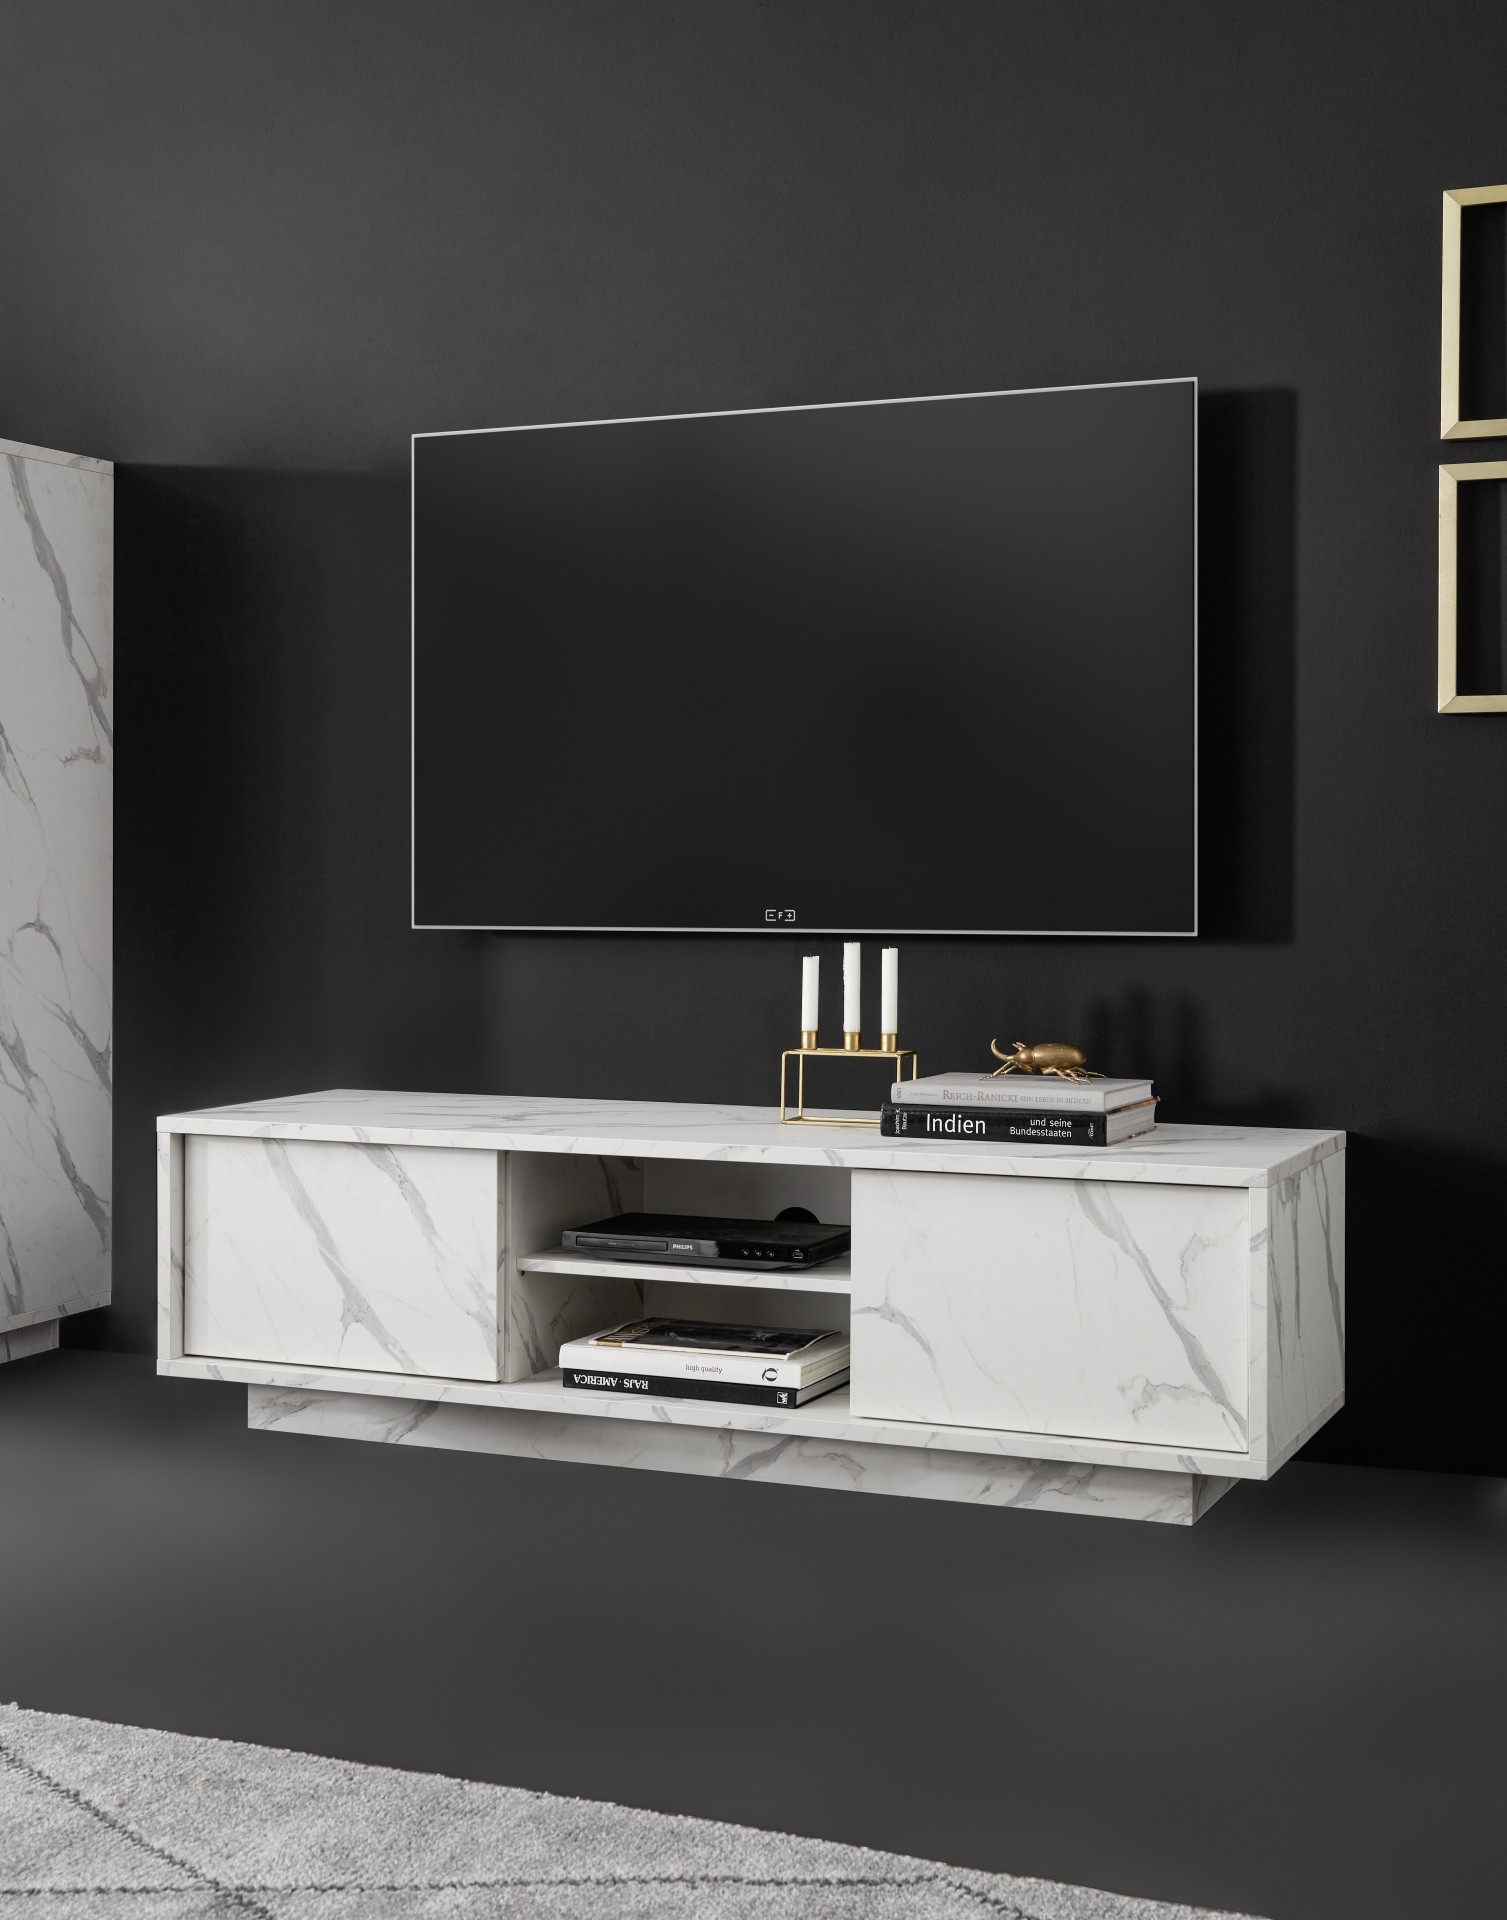 Carrara 139cm Modern Tv Unit In White Marble Imitation Inside Tv Stands With 2 Open Shelves 2 Drawers High Gloss Tv Unis (View 2 of 15)